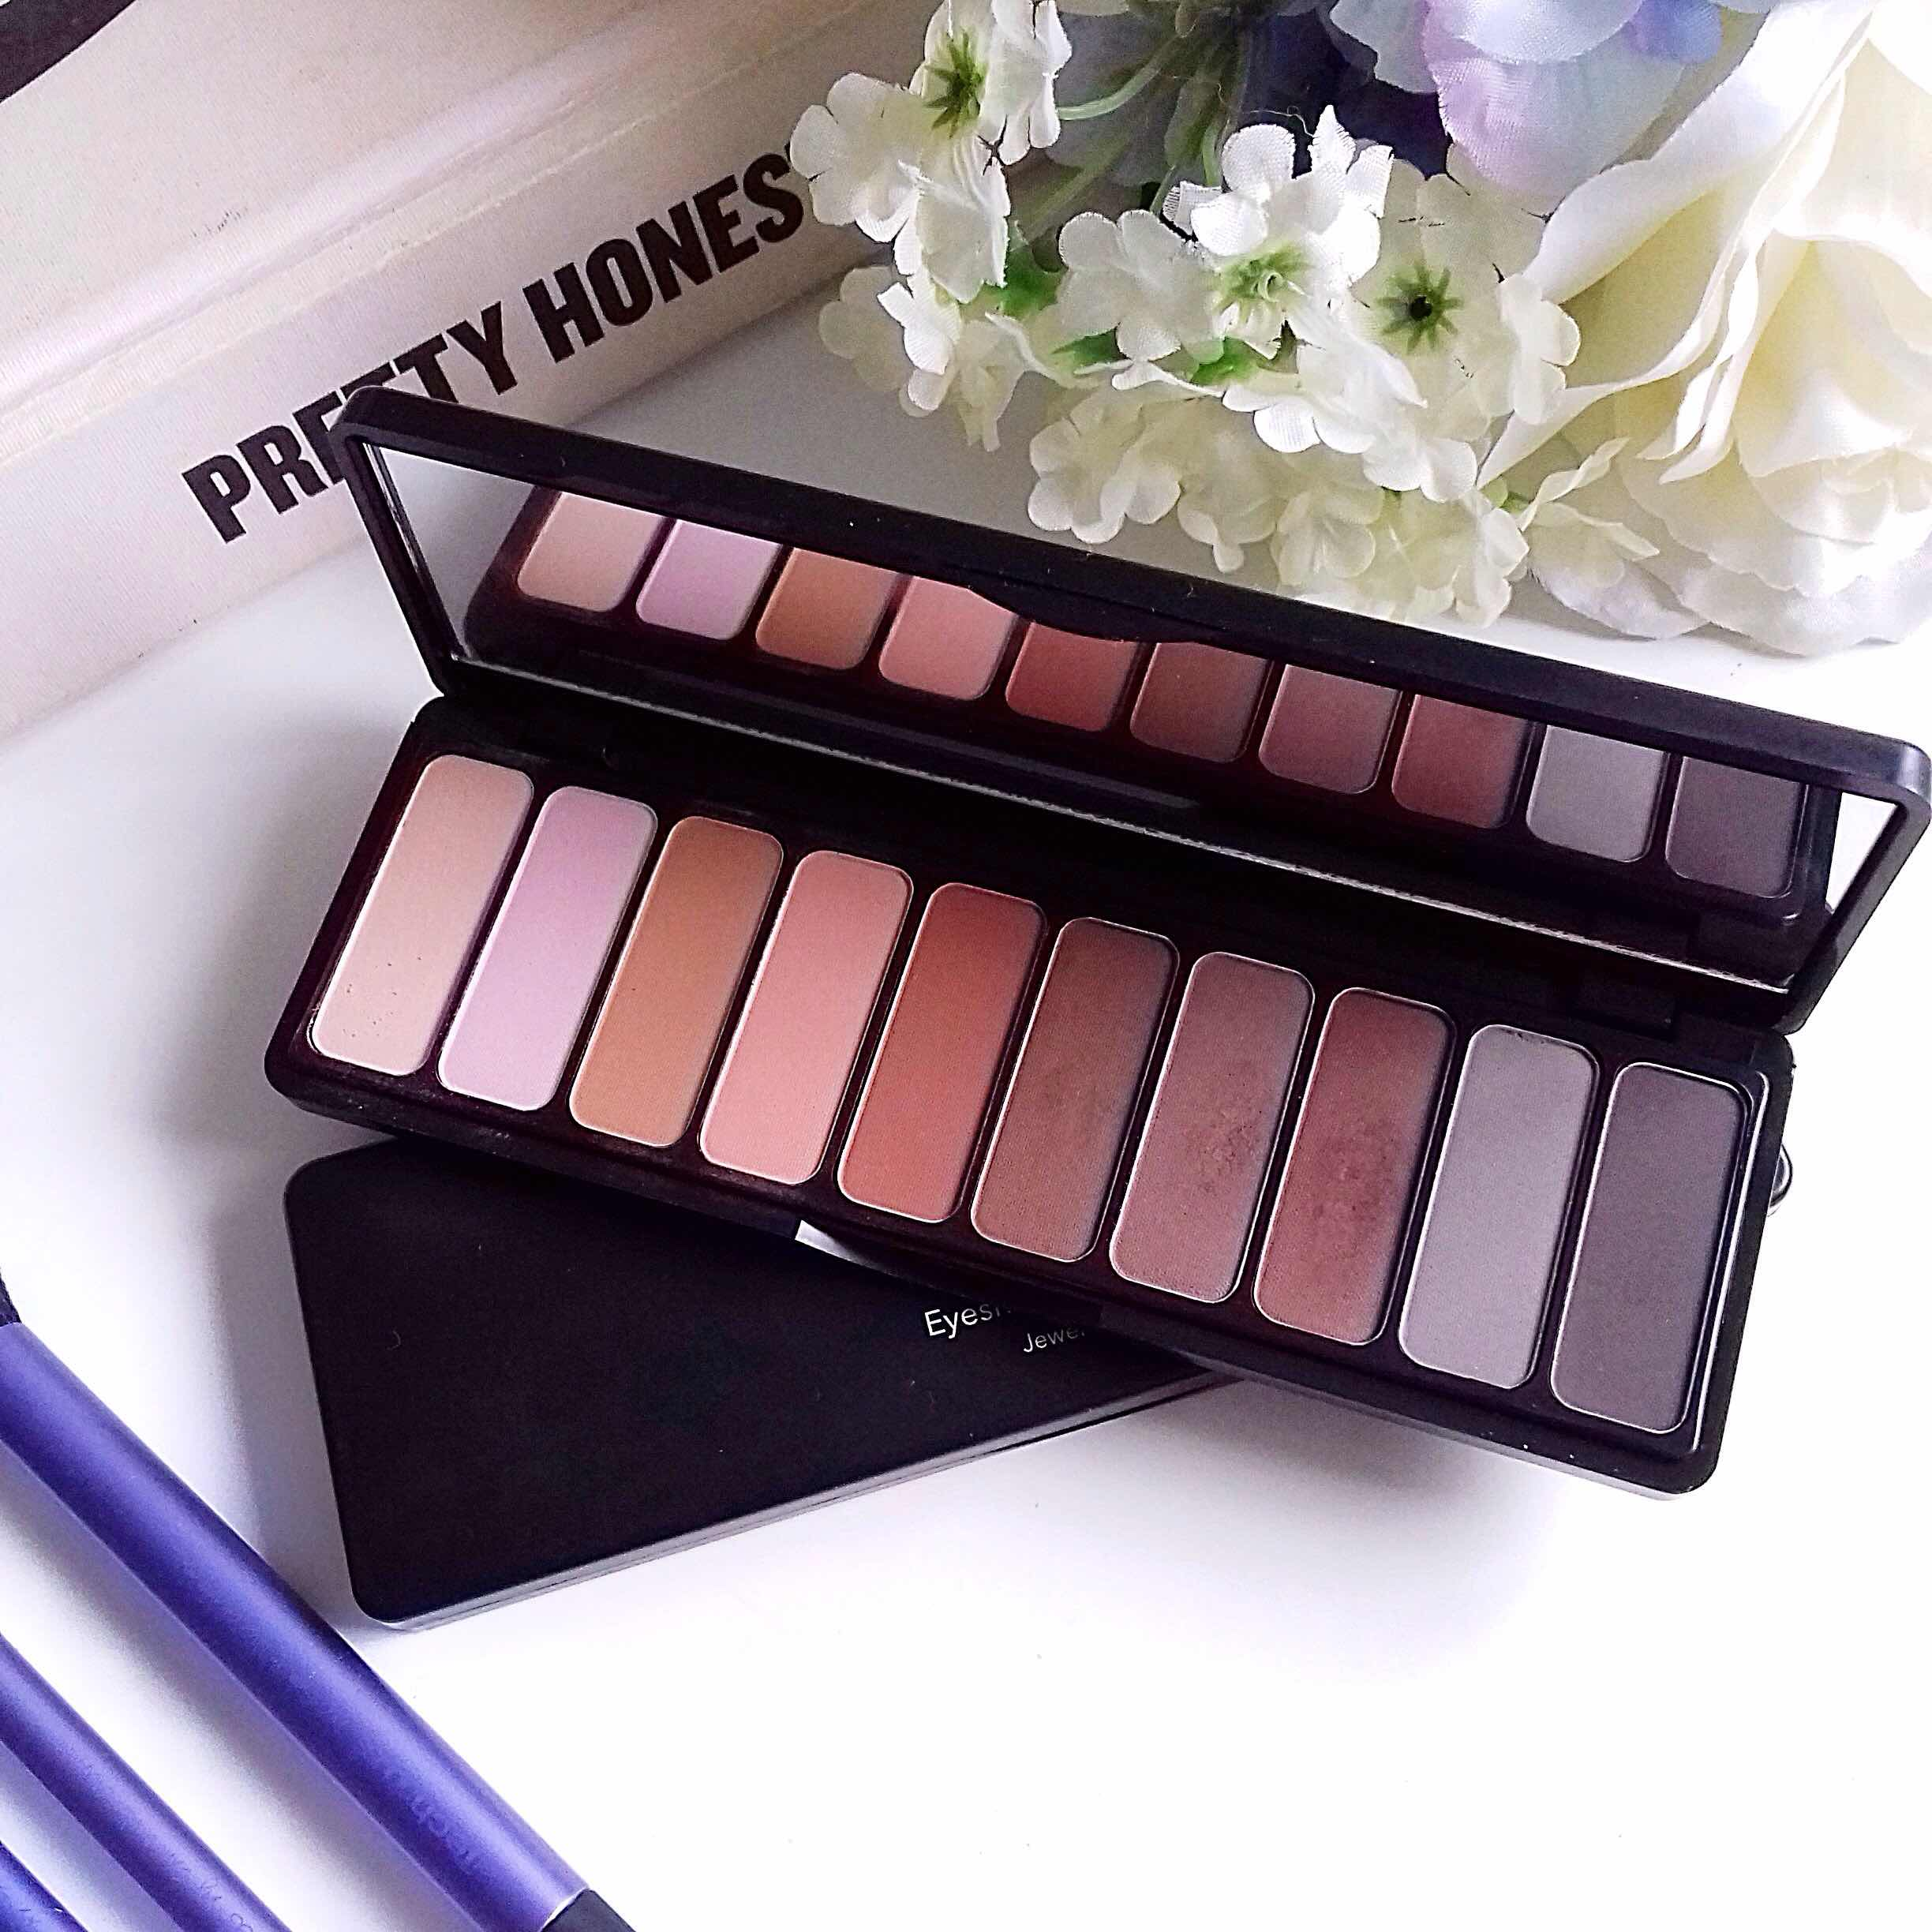 elf, mad for mattes, eyeshadow palette, sheer gloss, mattes, matte eyeshadow, nude mood, review